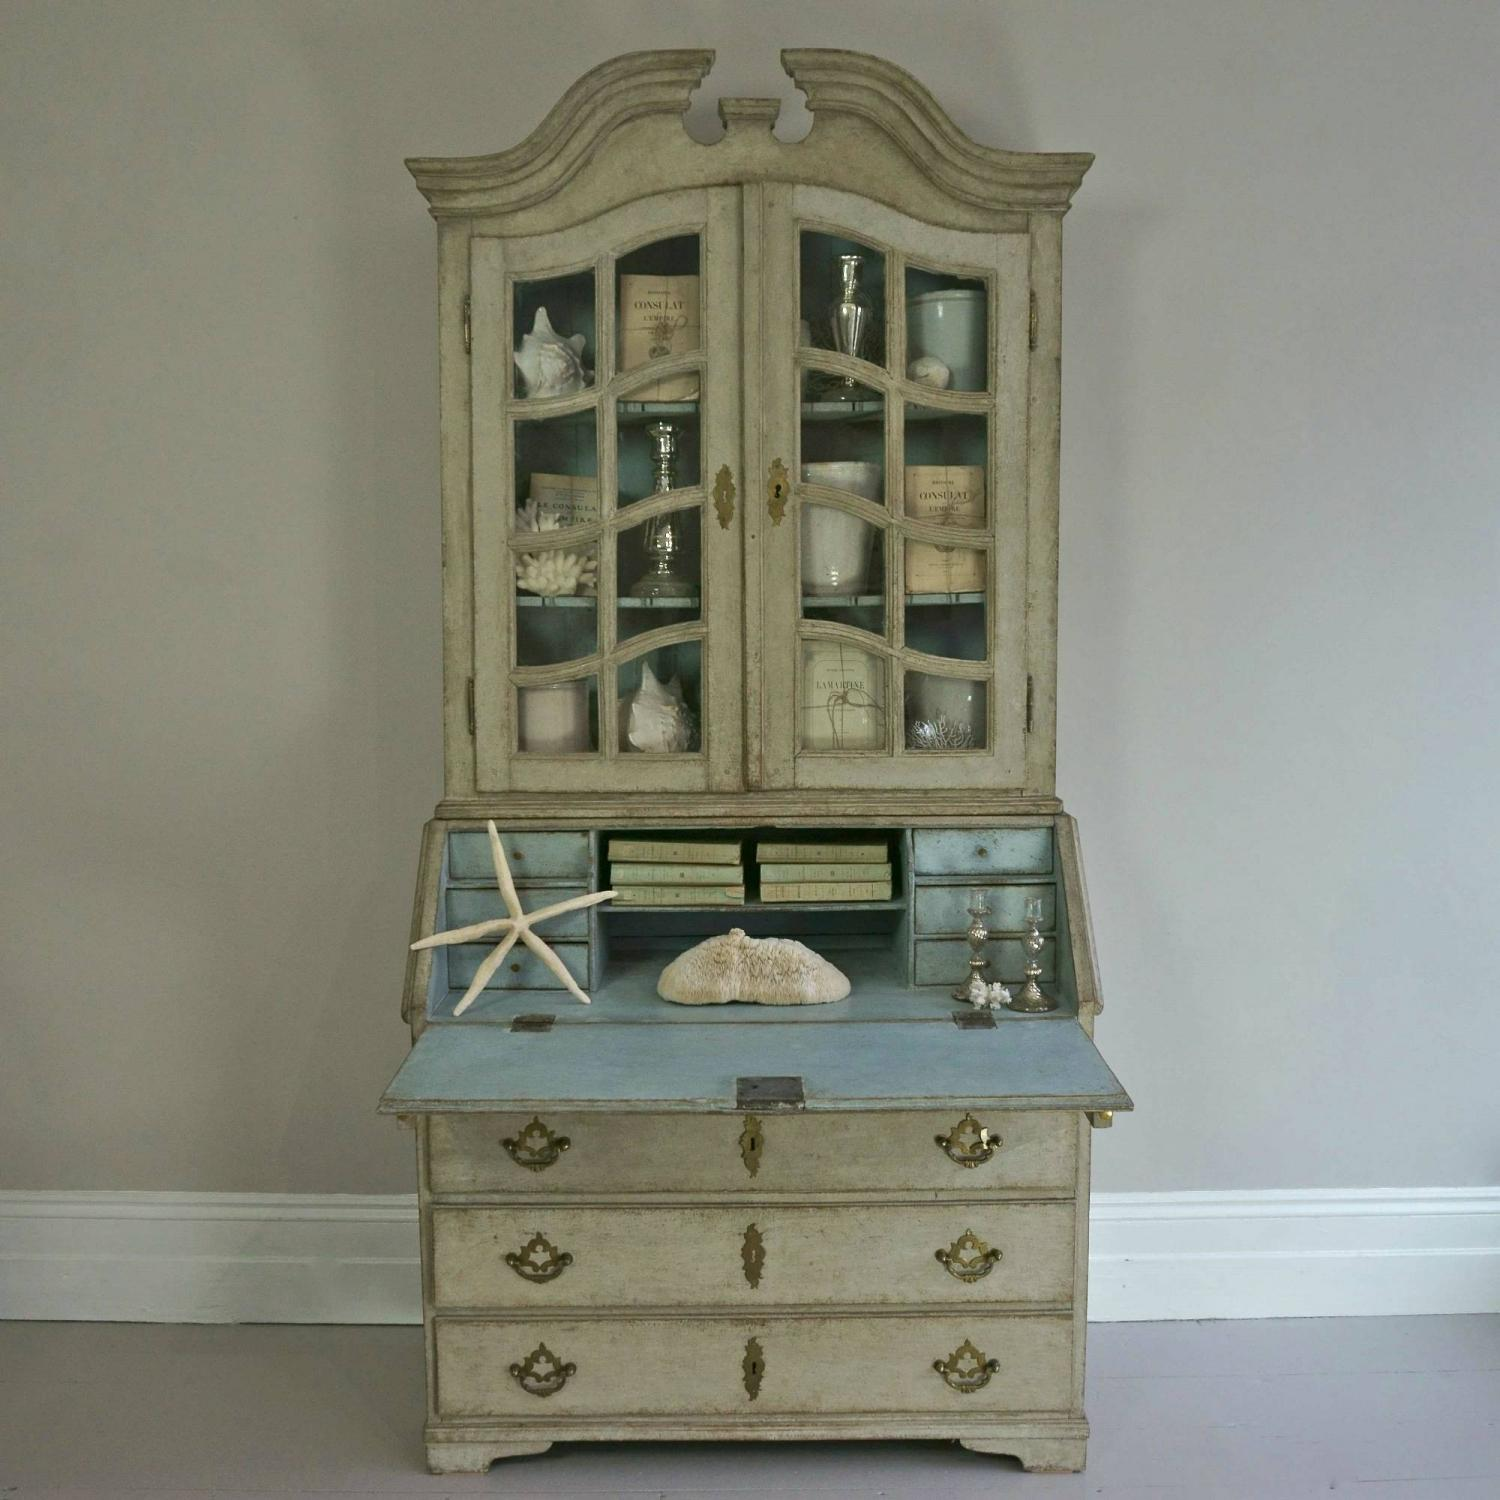 EXQUISITE SWEDISH ROCOCO SECRETAIRE WITH GLASS VITRINE